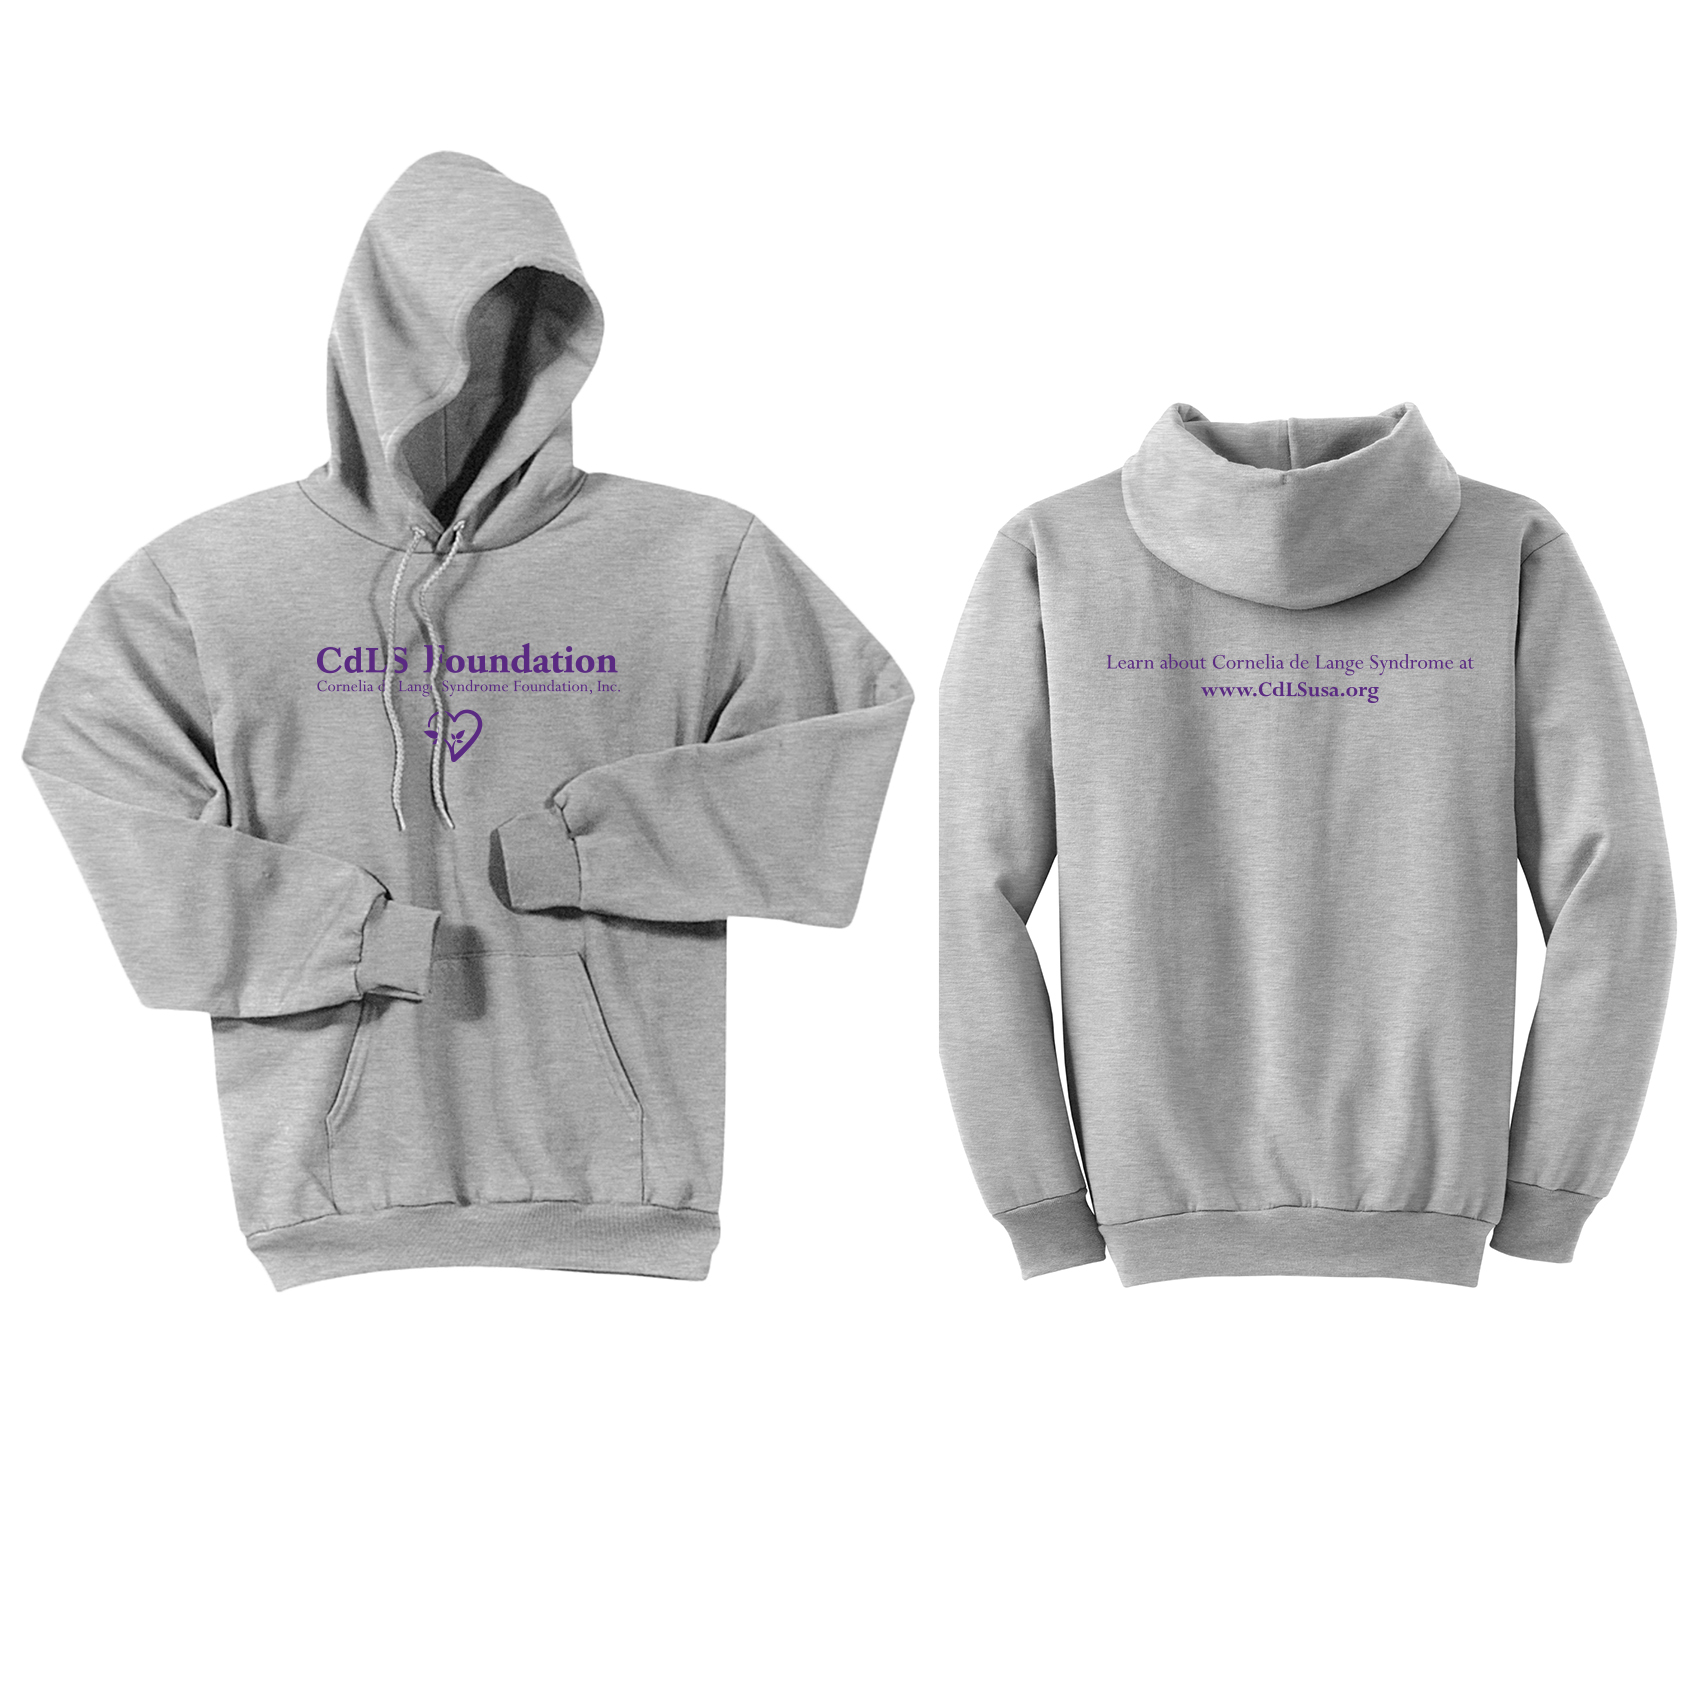 Classic Pullover Hooded Sweatshirt - Adult